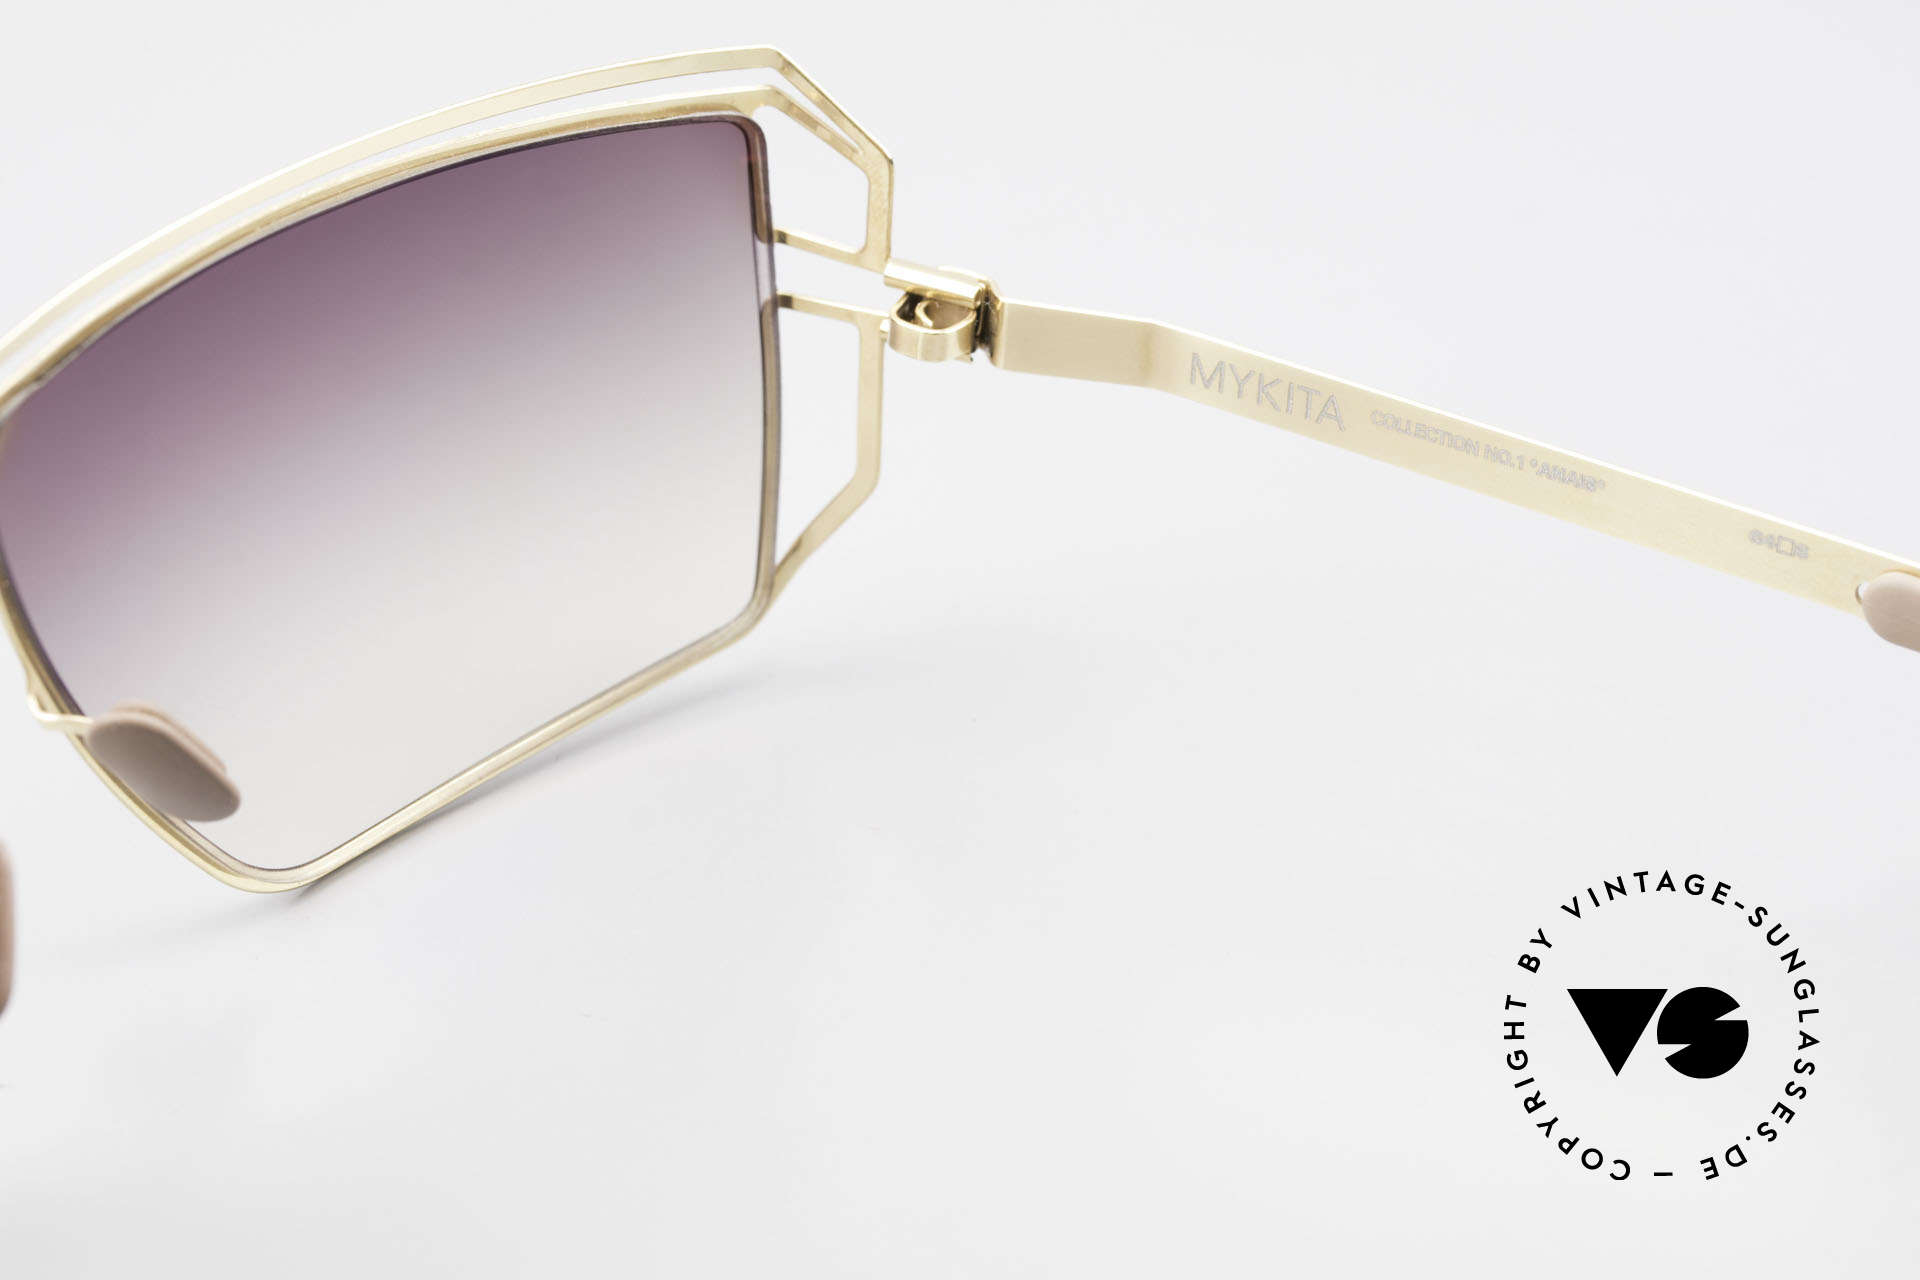 Mykita Anais Ladies Sunglasses From 2007, thus, now available from us (unworn and with orig. case), Made for Women